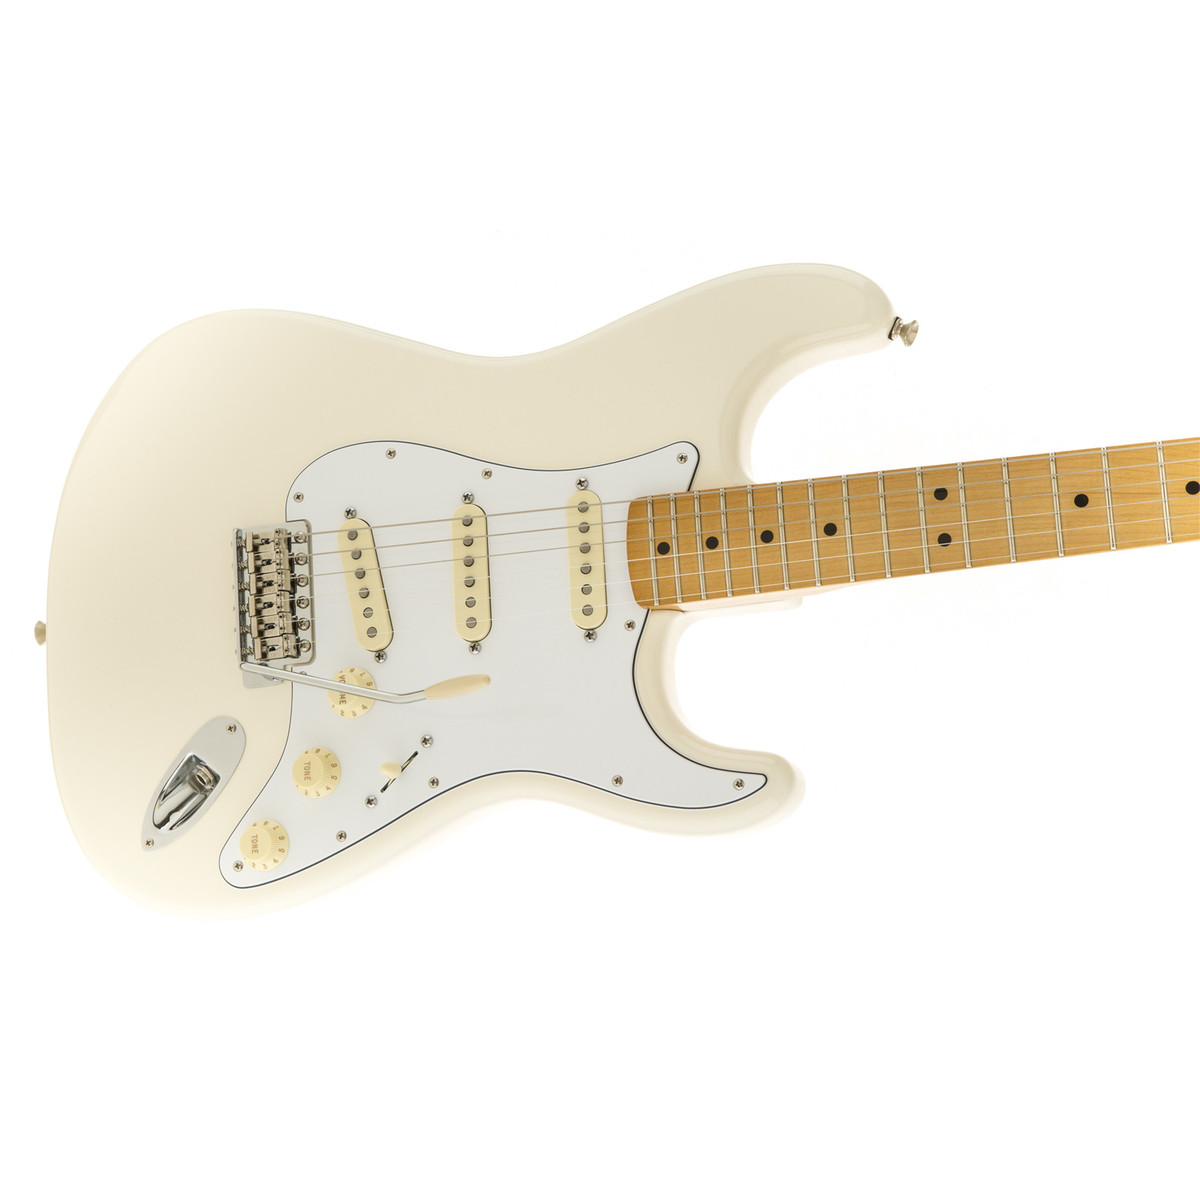 fender jimi hendrix stratocaster olympic white at gear4music. Black Bedroom Furniture Sets. Home Design Ideas